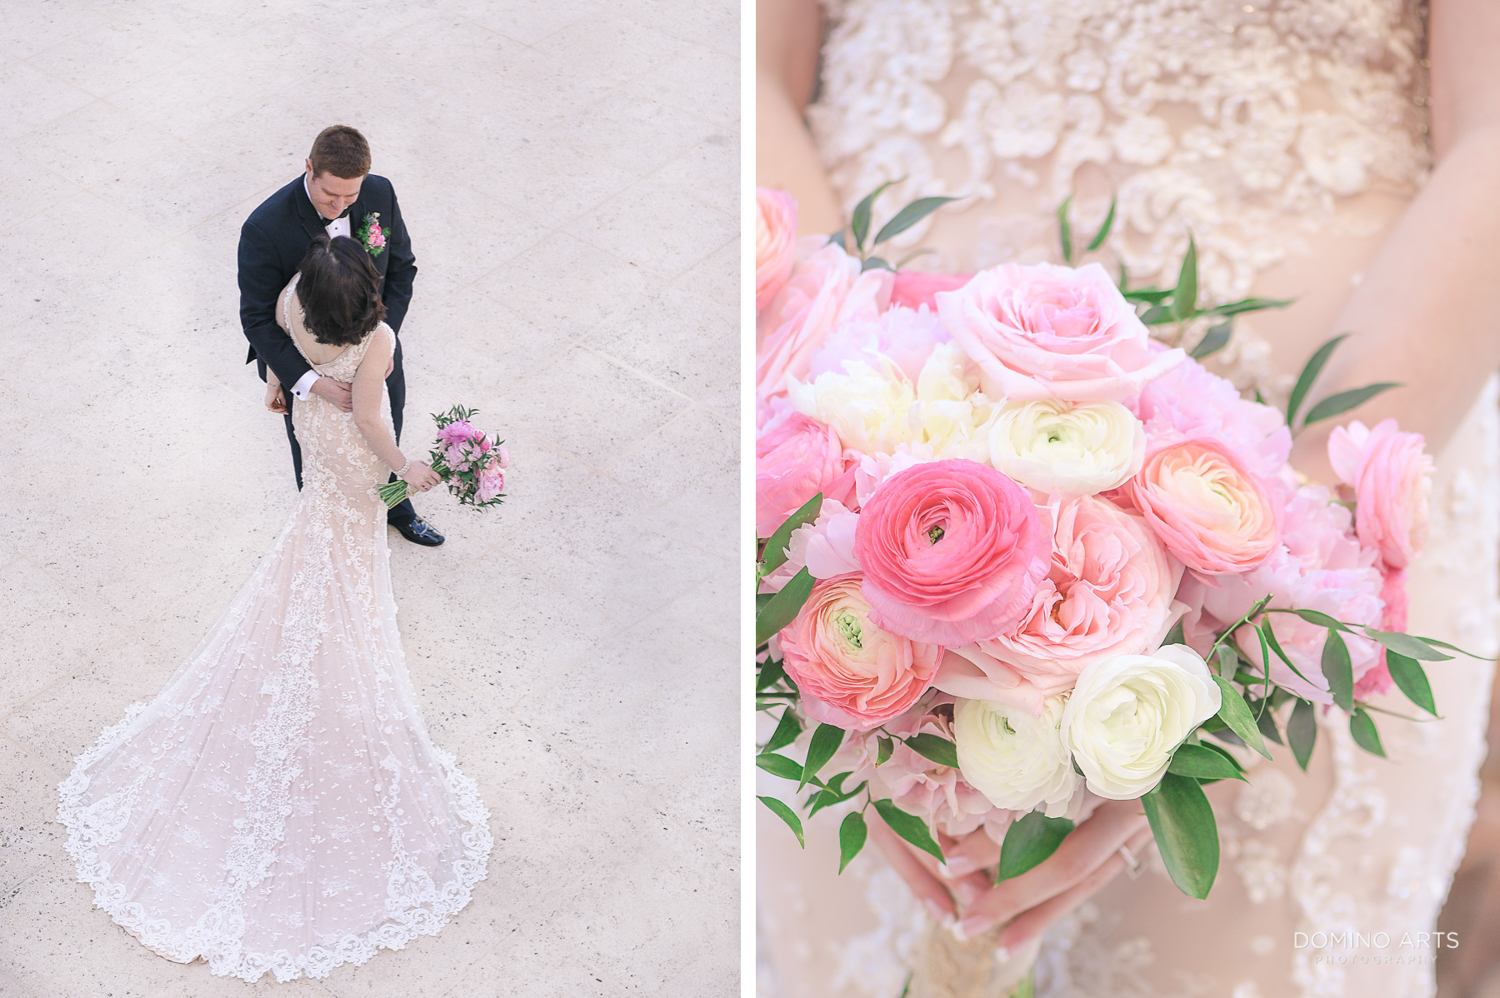 Luxury wedding photos of a bride and groom at The Ritz Carlton Sarasota